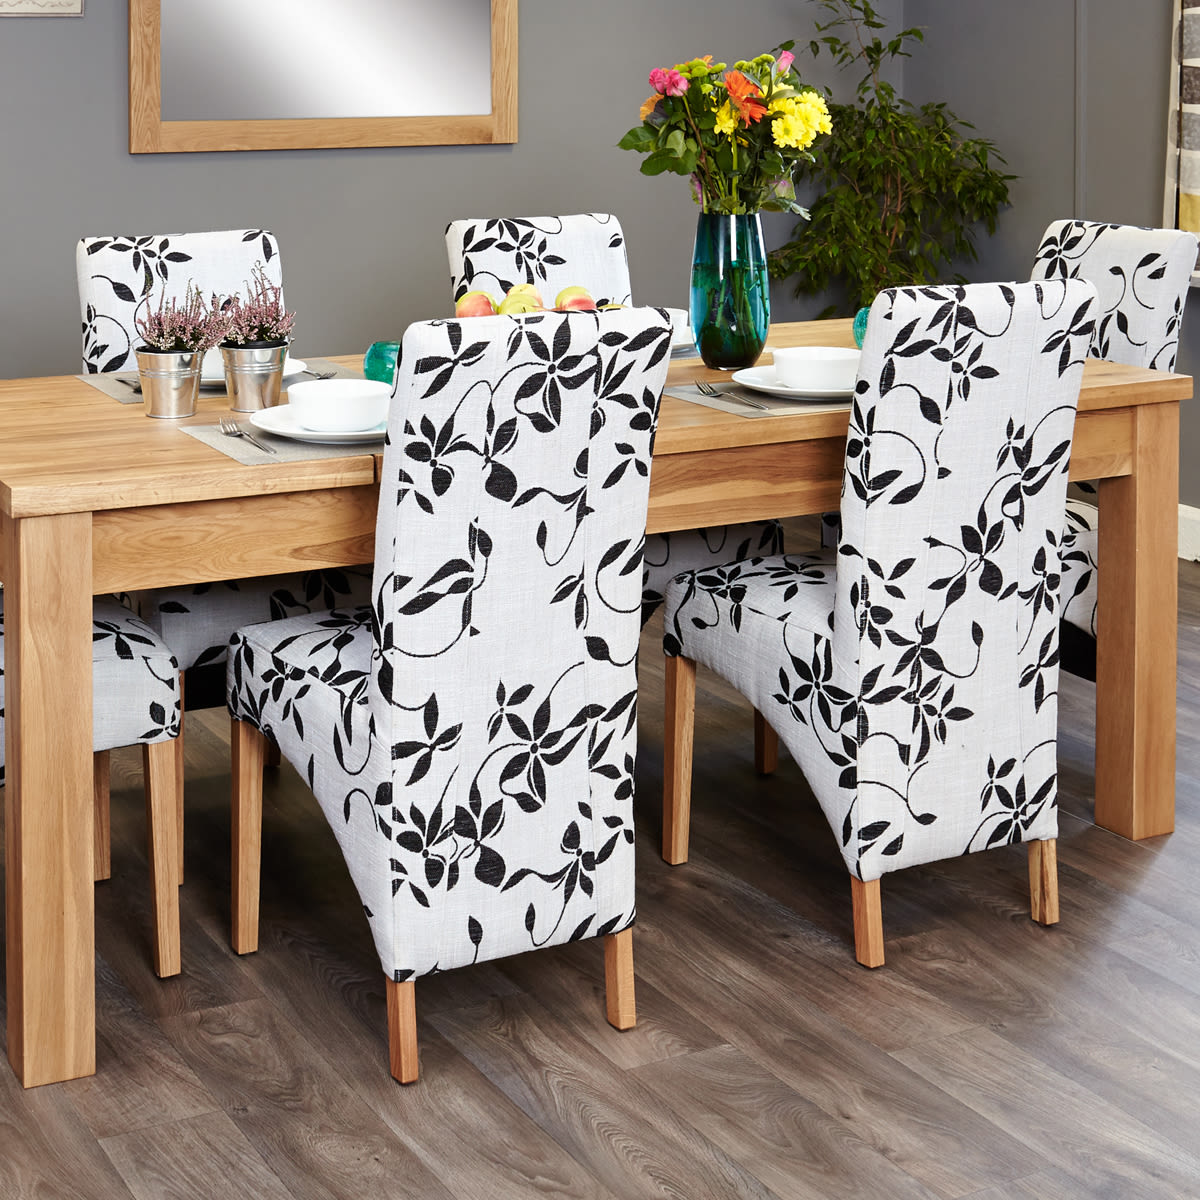 mobel oak extending table and 6 cream and brown flock chairs was 1 349 00 now 1 099 00 wooden furniture store